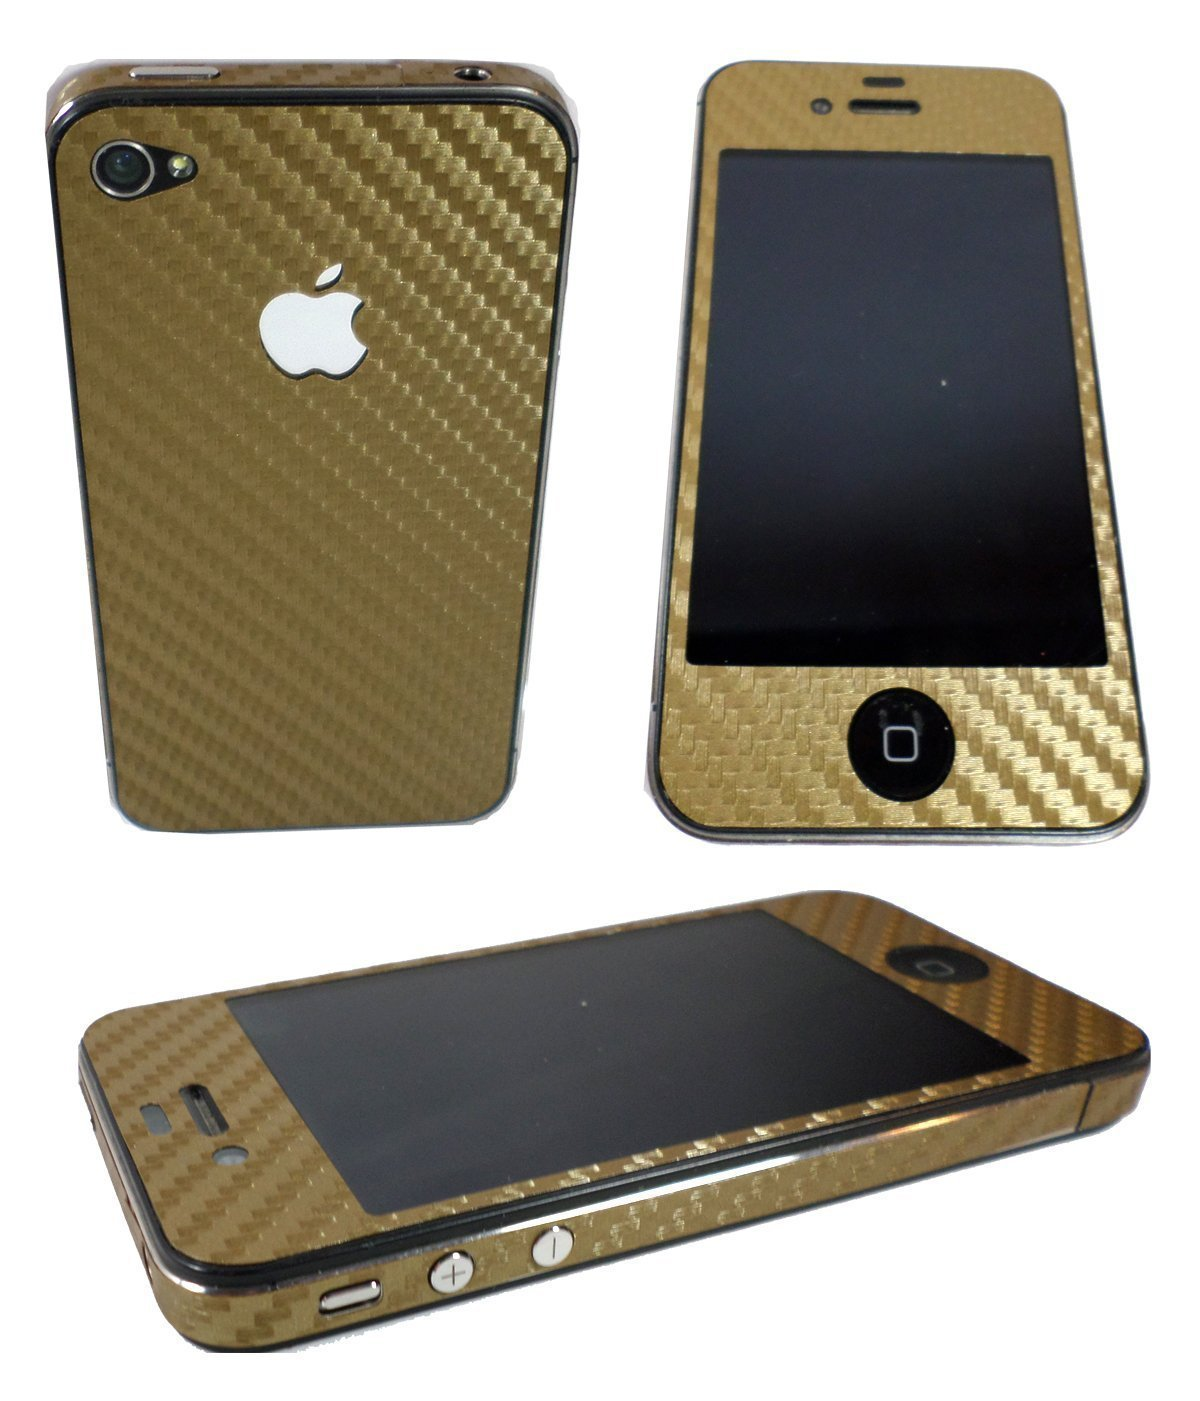 Iphone 3 Precio Libre Skincolor Fibra Carbono Iphone 3 3gs 4 4s 5 5s 5c 6 Ipod